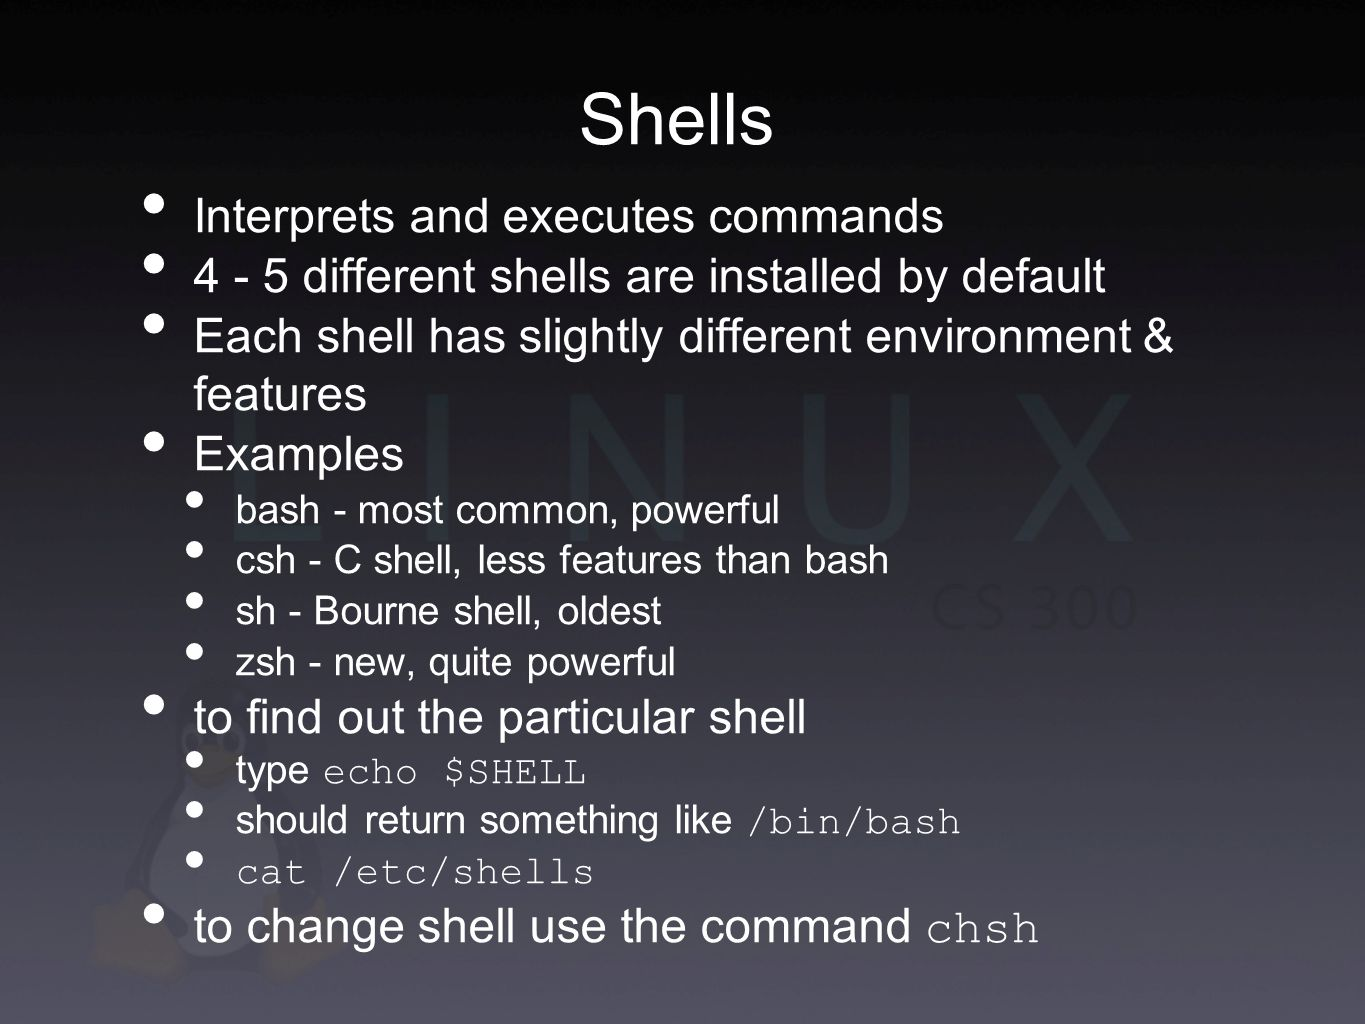 Shells Interprets and executes commands different shells are installed by default Each shell has slightly different environment & features Examples bash - most common, powerful csh - C shell, less features than bash sh - Bourne shell, oldest zsh - new, quite powerful to find out the particular shell type echo $SHELL should return something like /bin/bash cat /etc/shells to change shell use the command chsh